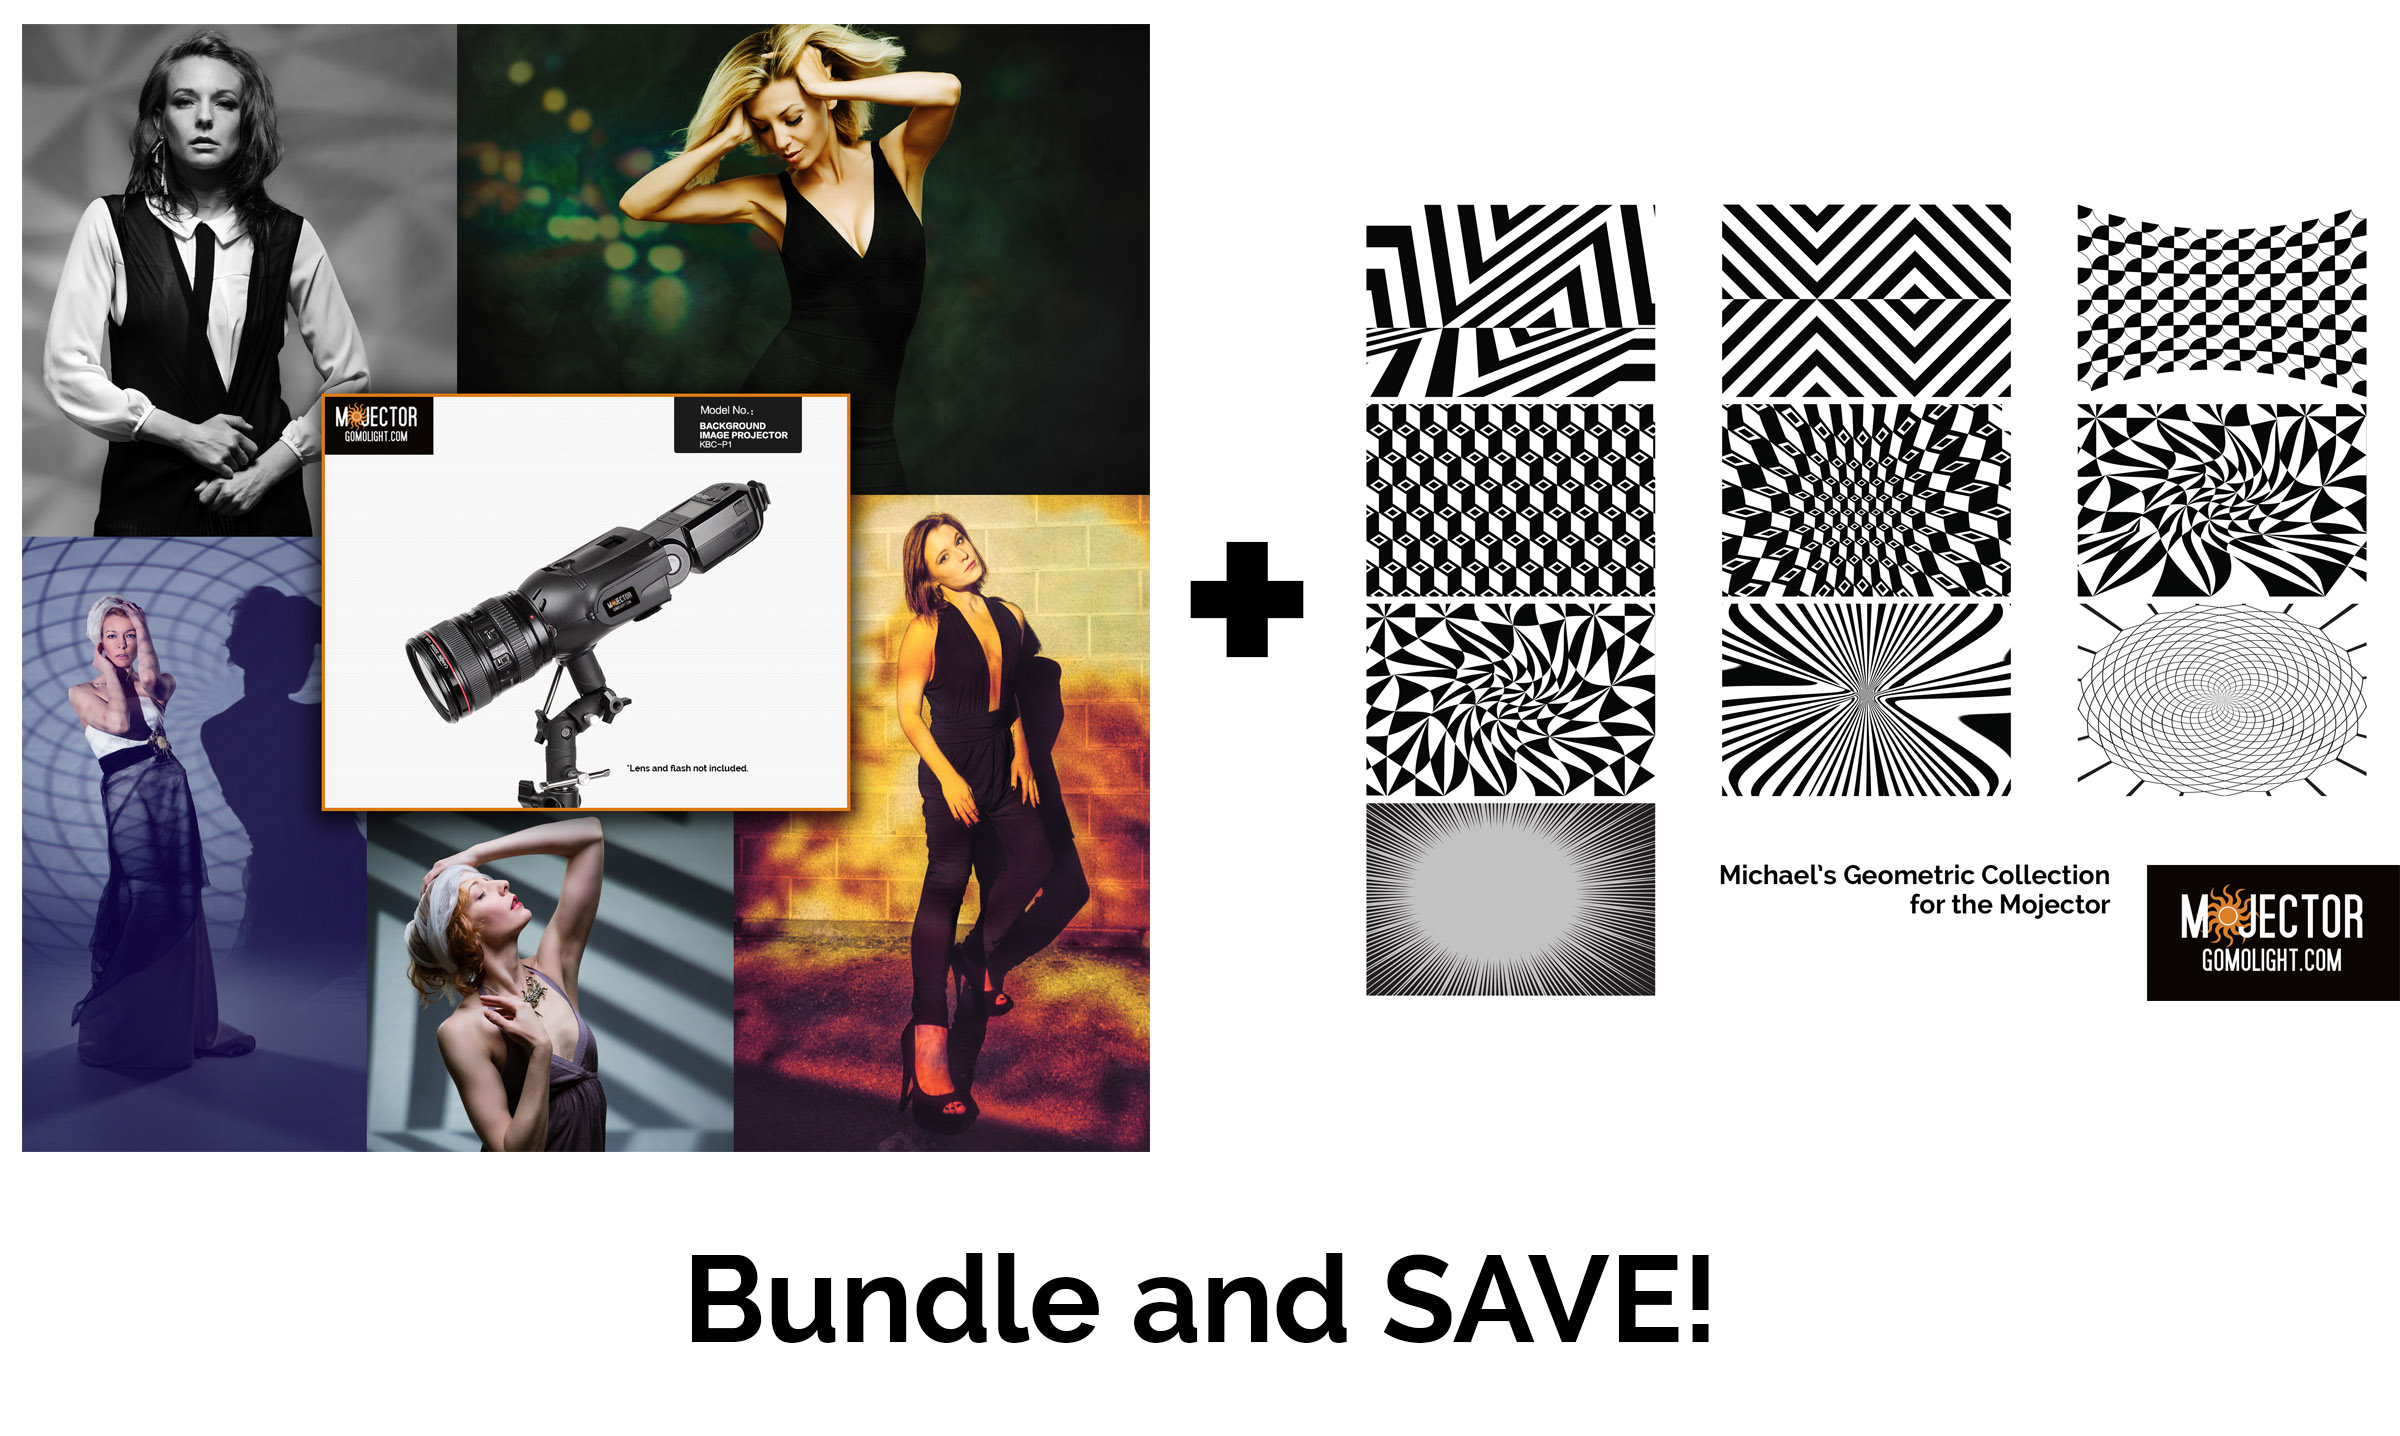 Mojector Bundle 1: Mojector + Geometric Collection